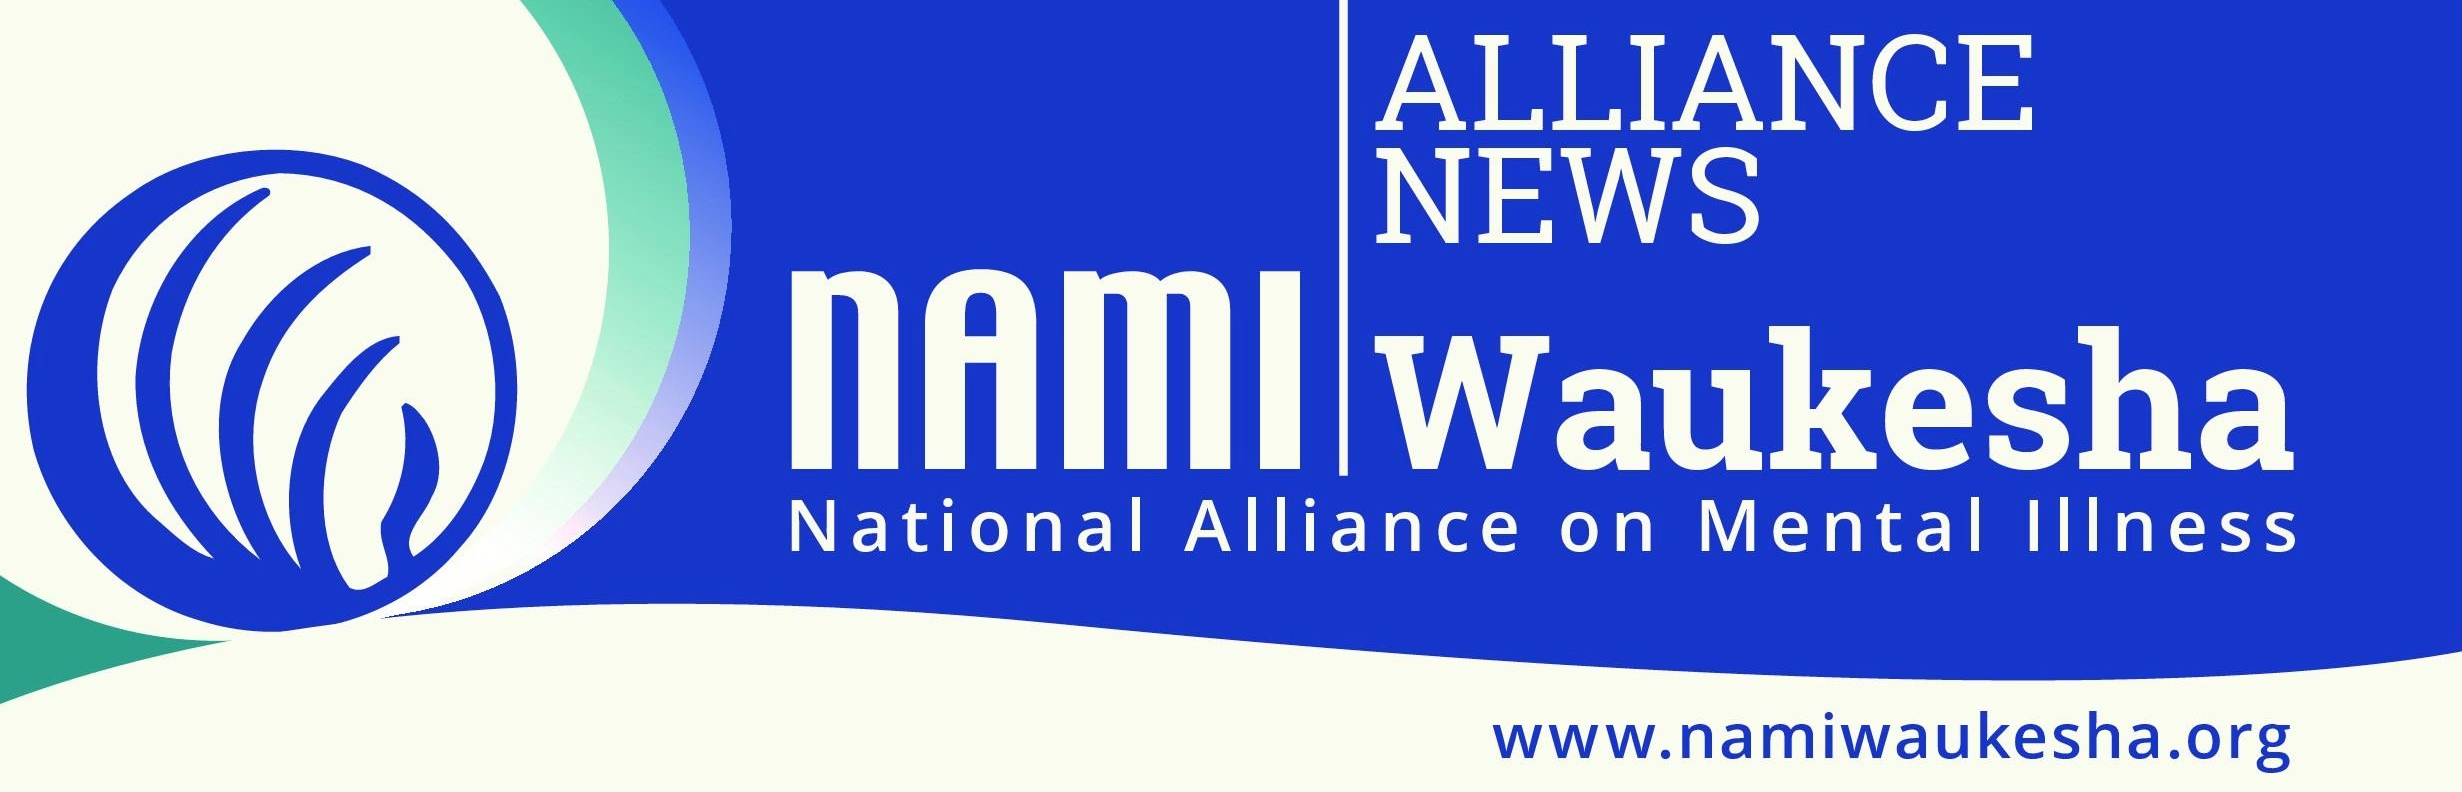 NAMI Waukesha Alliance HEader Image